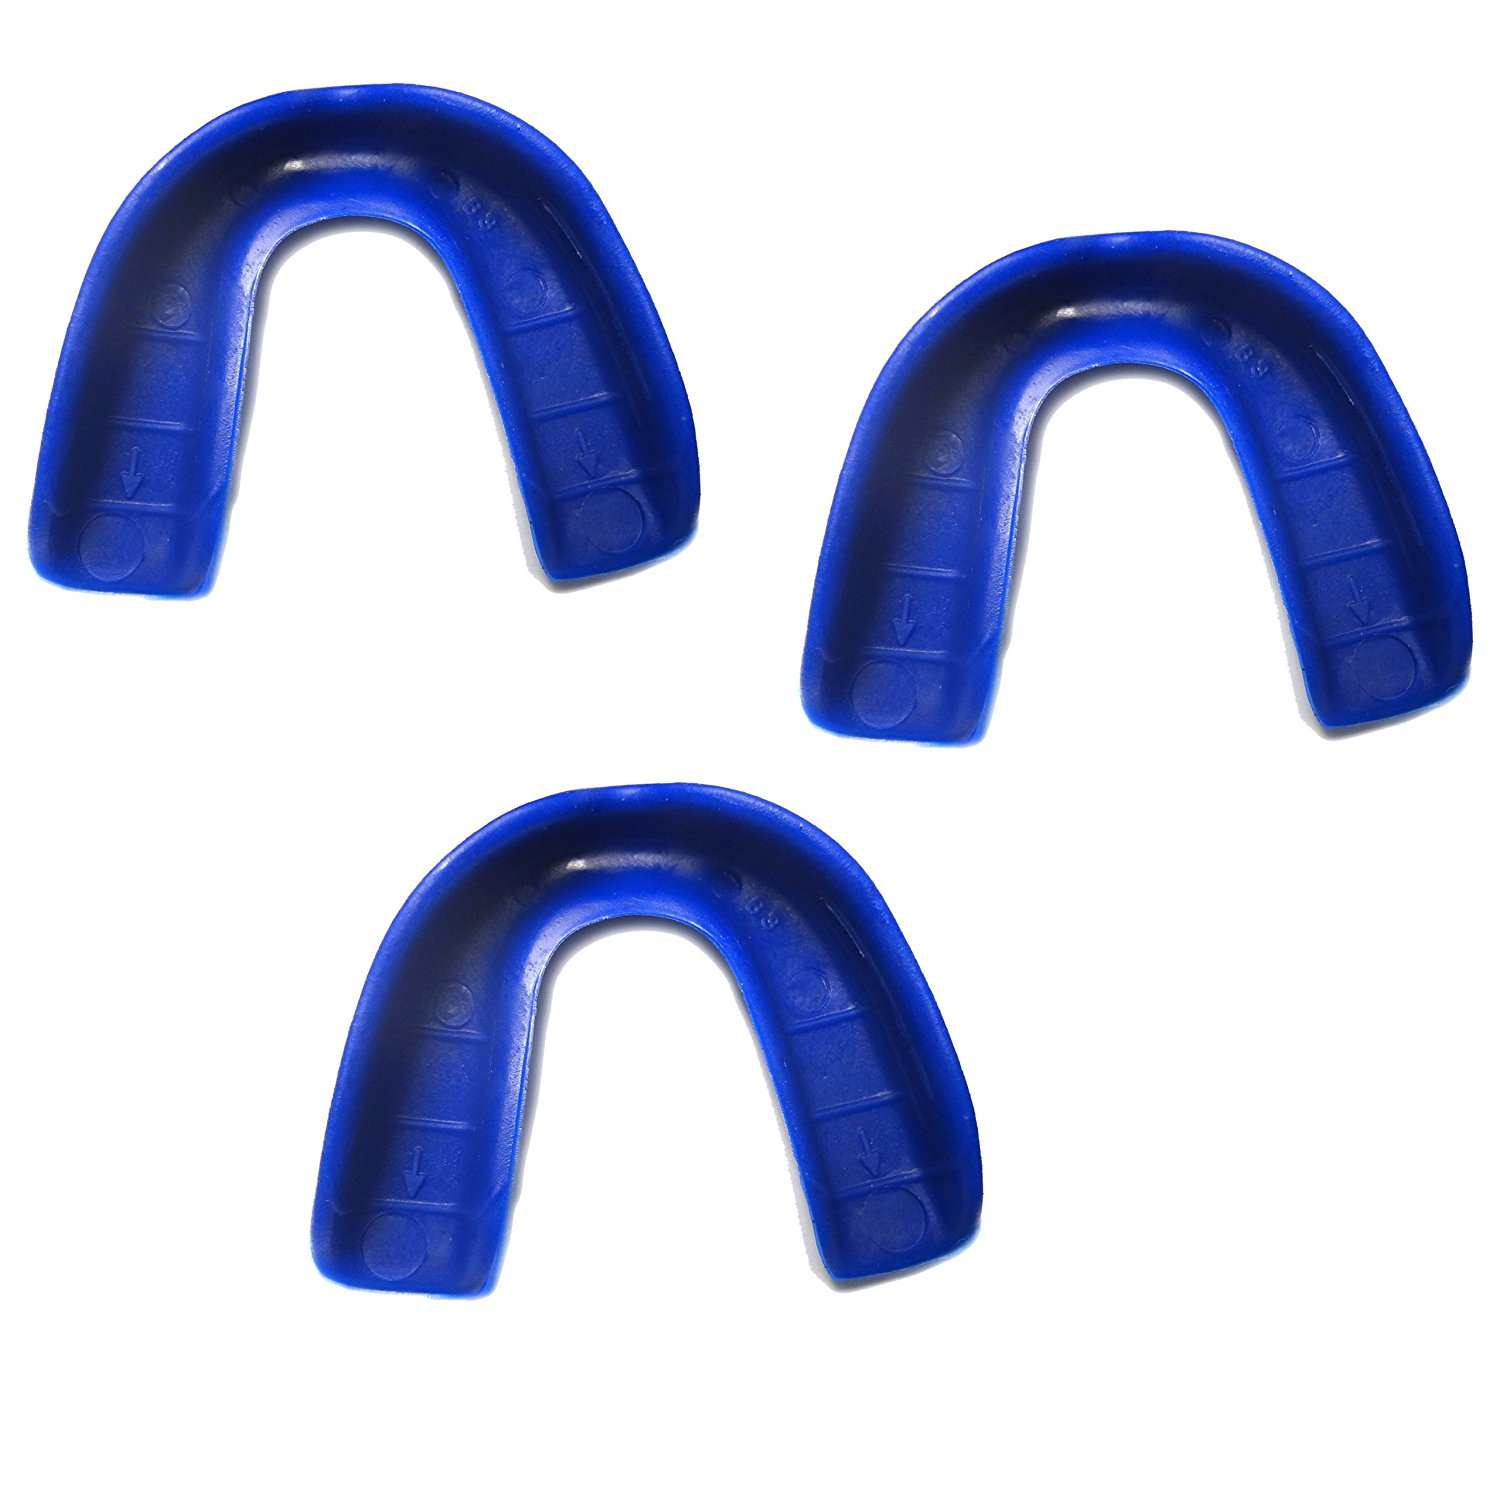 3 Pack! SafeTGard Adult Form Fit Super Mouthguard without Strap (Available in 12 Colors)